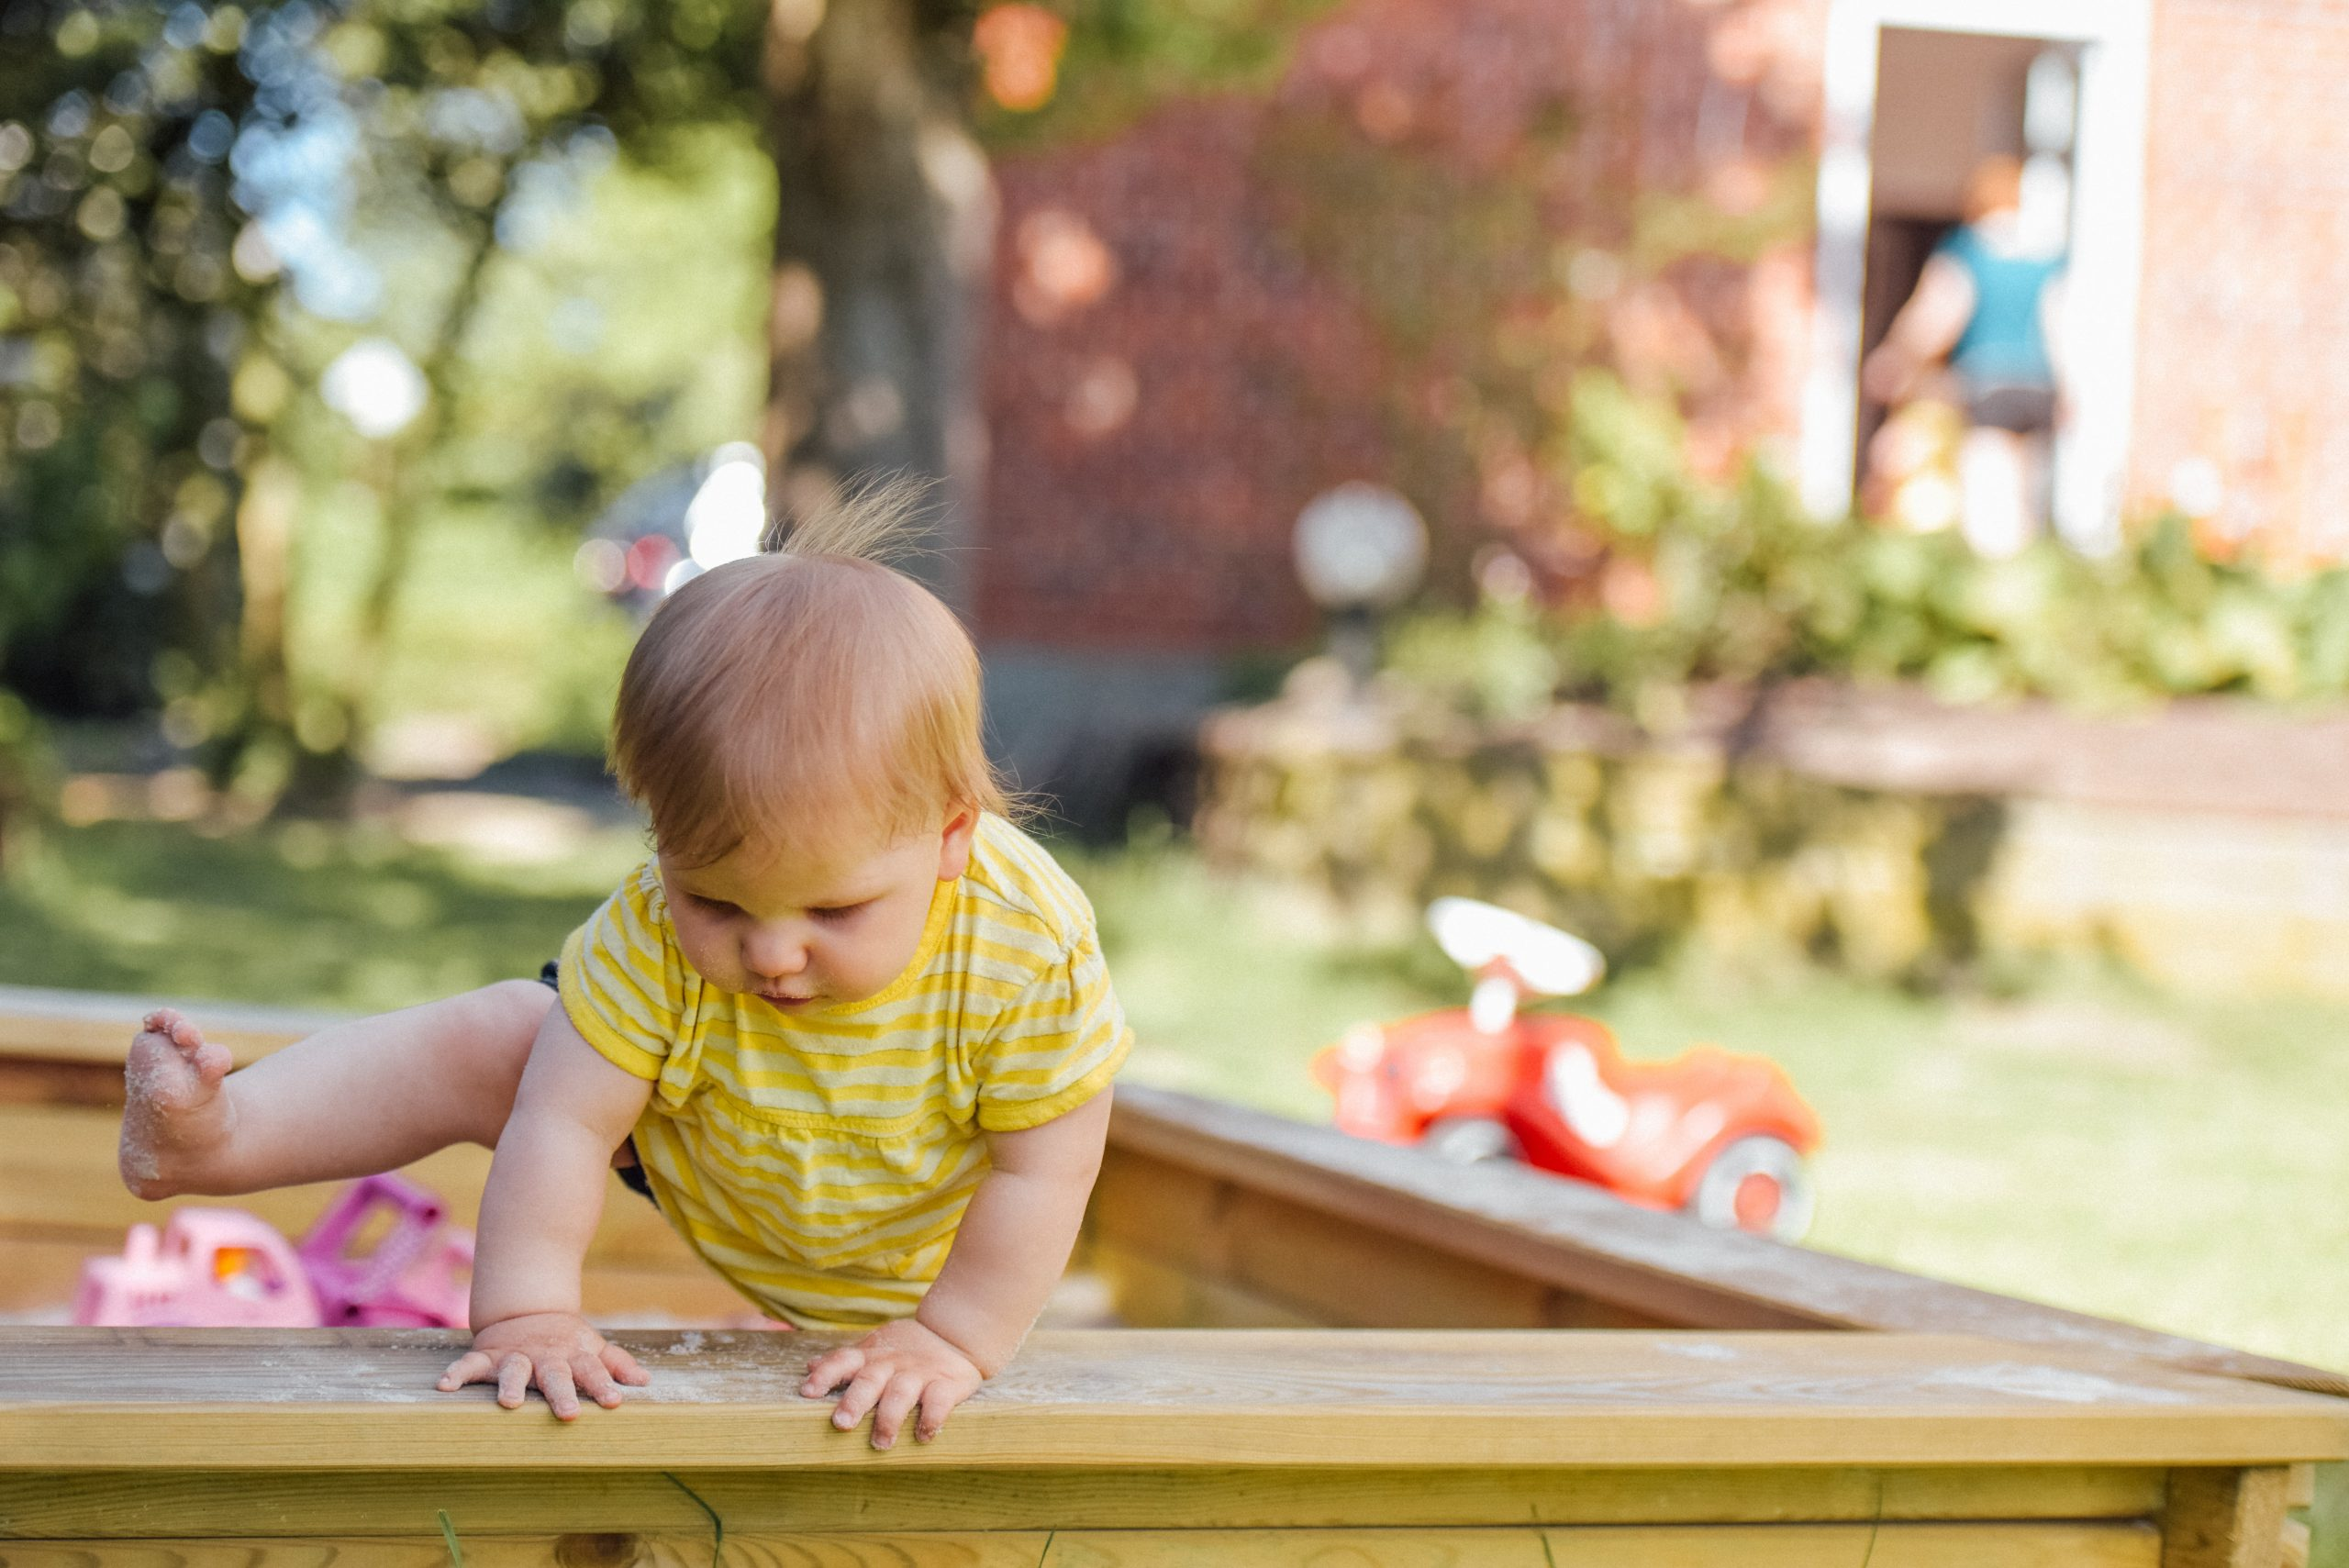 This DIY sandbox with seats for kids is going to SERIOUSLY be a hit! You'll have the entire neighborhood at your house having fun before you know it. Check it out!